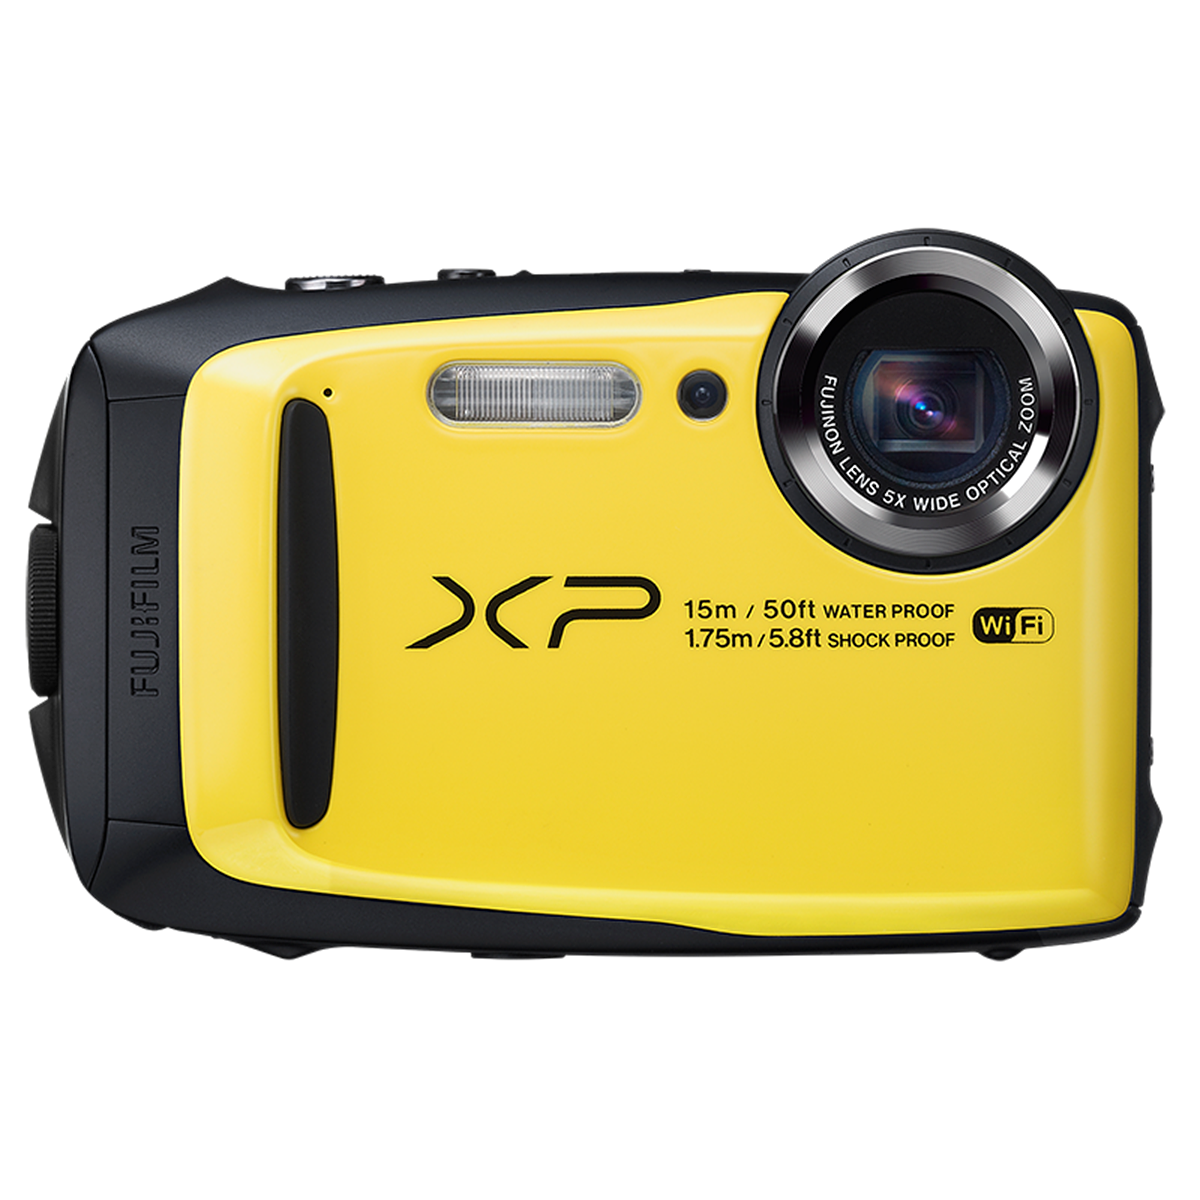 Finepix Xp90 Rugged Camera